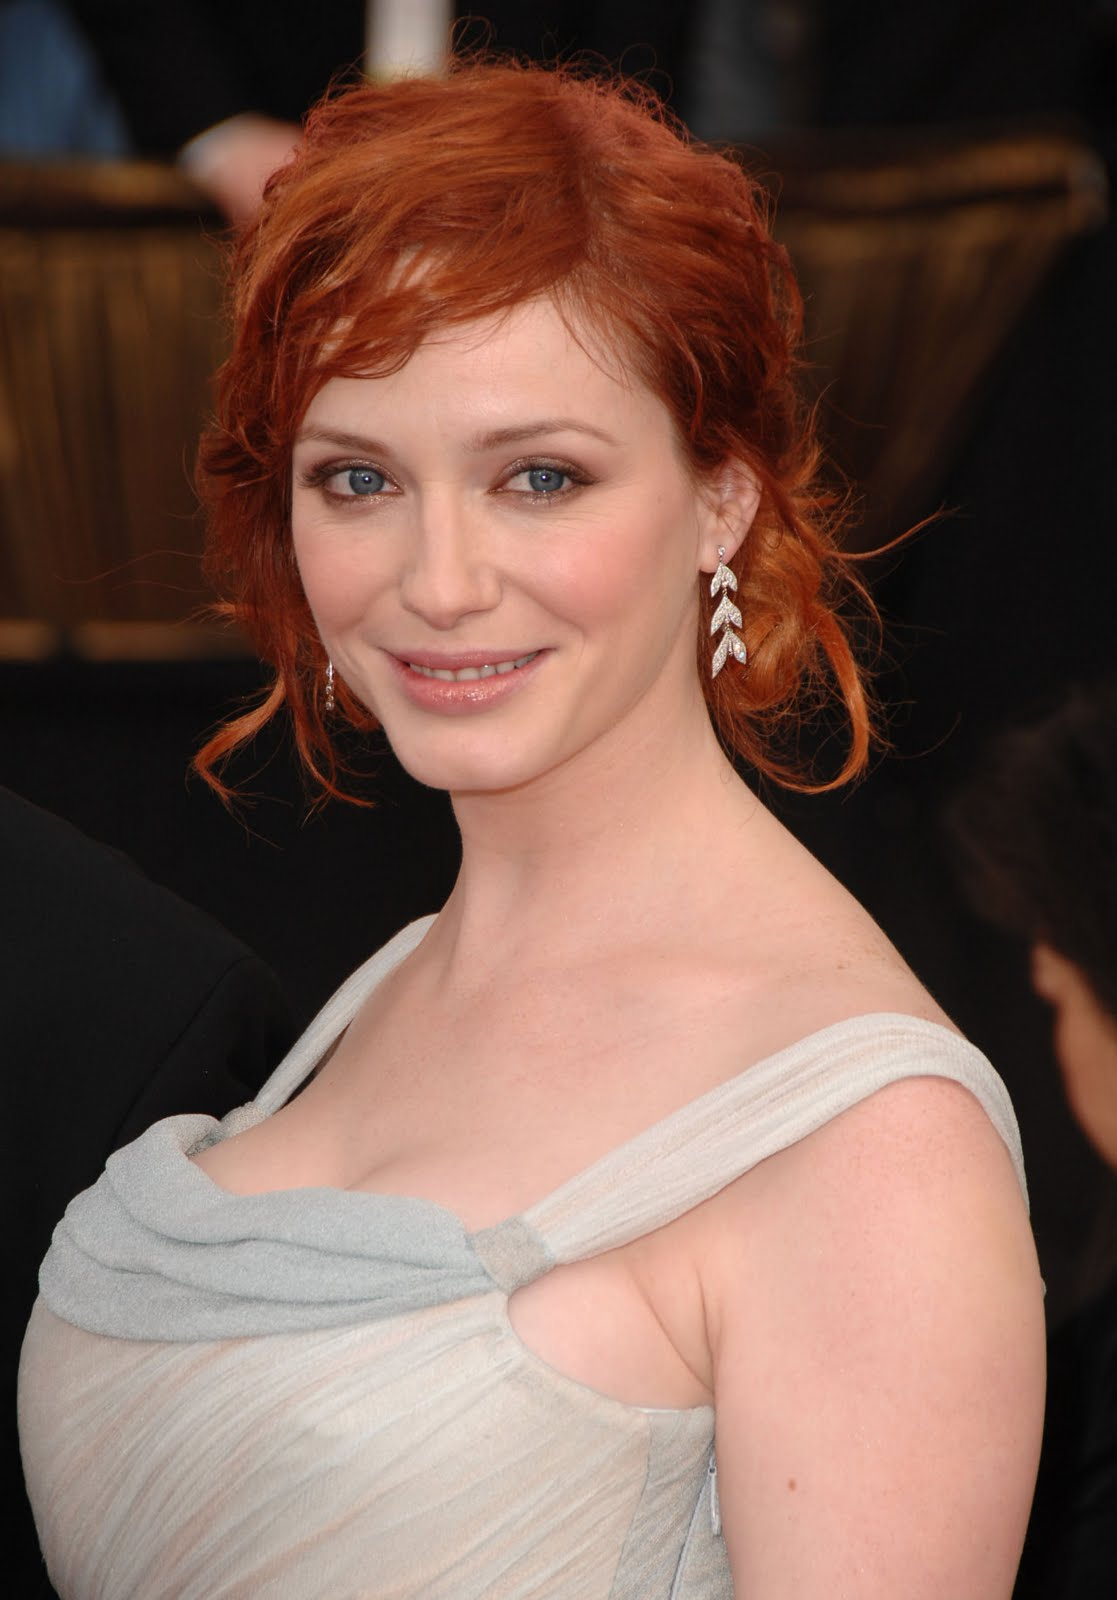 Hollywood Actress Christina Hendricks Hot Pictures Pics Photos